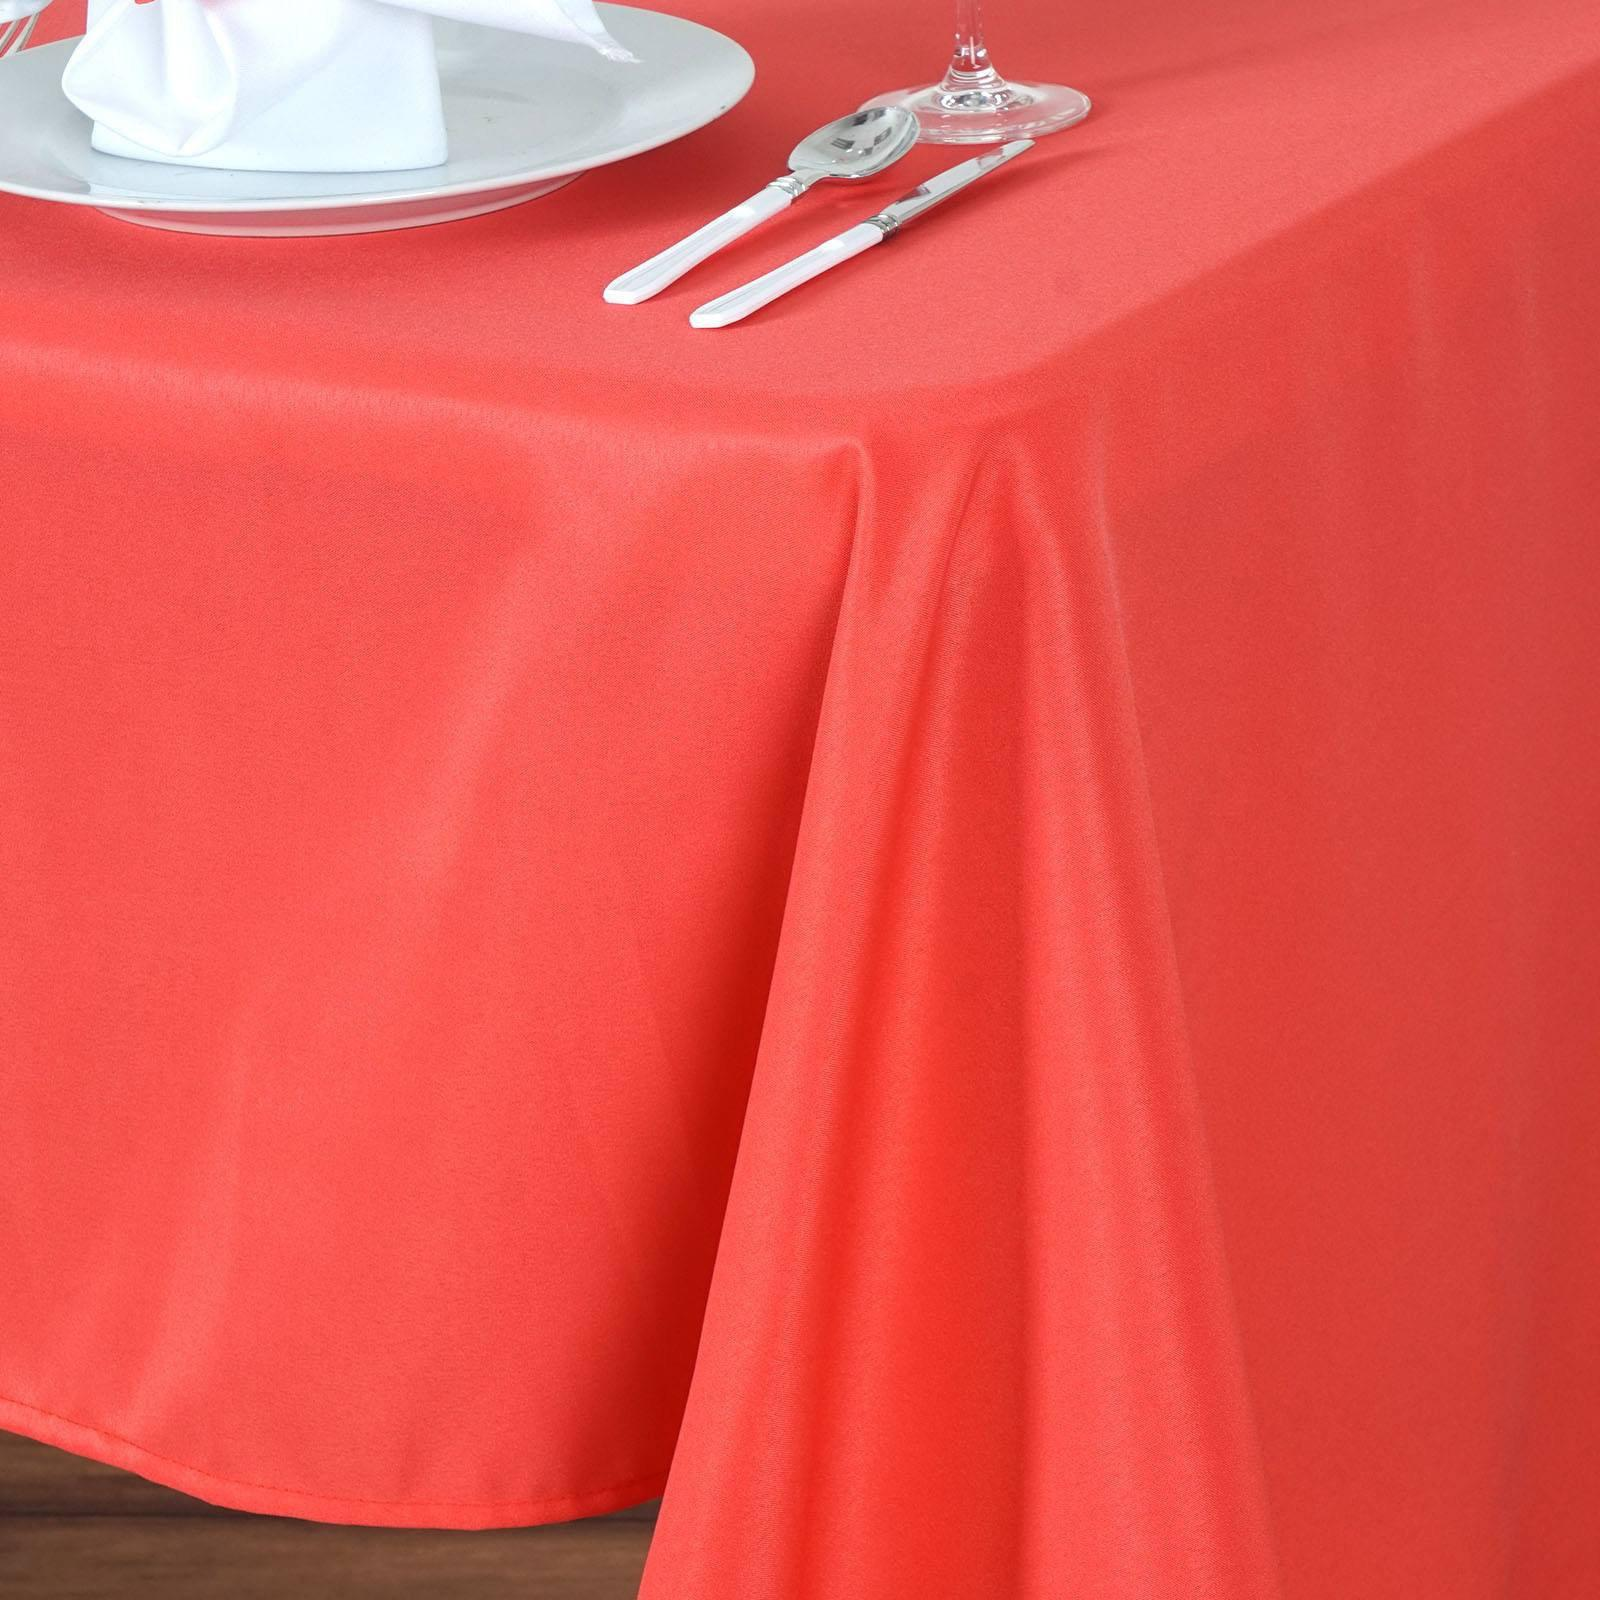 Superior Tablecloths Factory